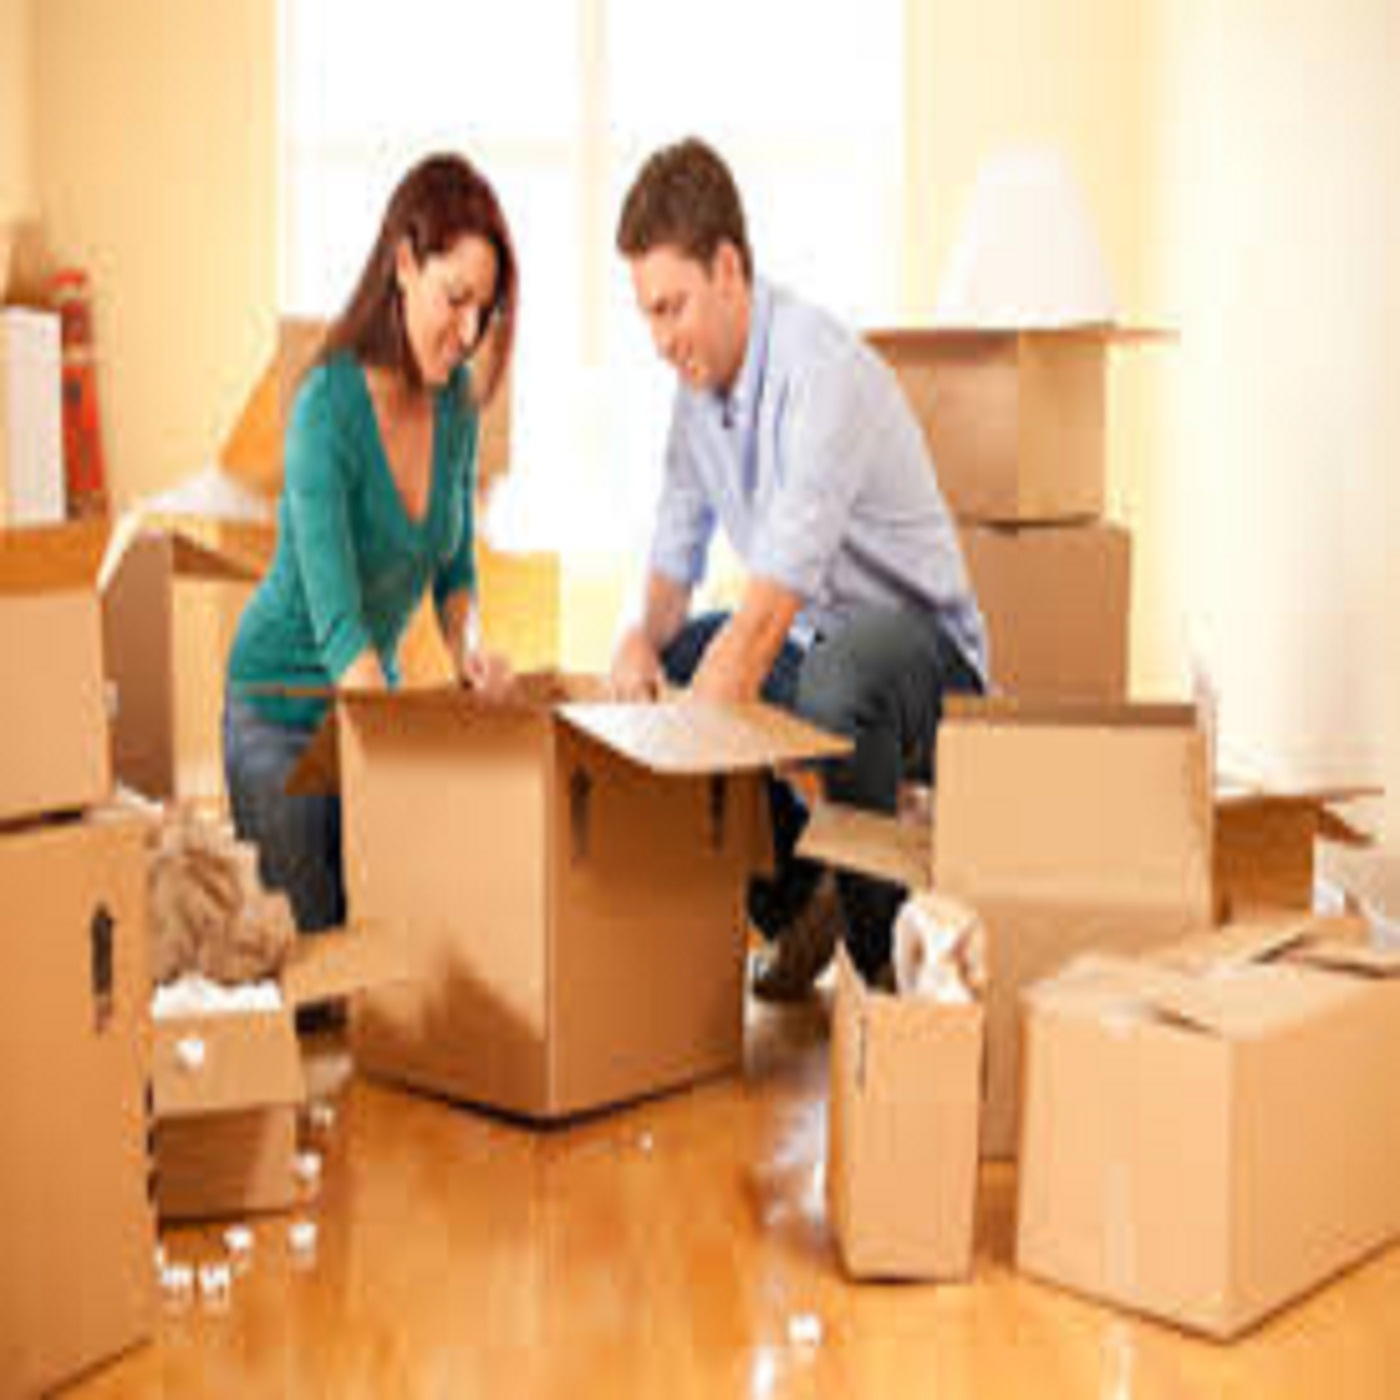 Movers and packers Weehawken